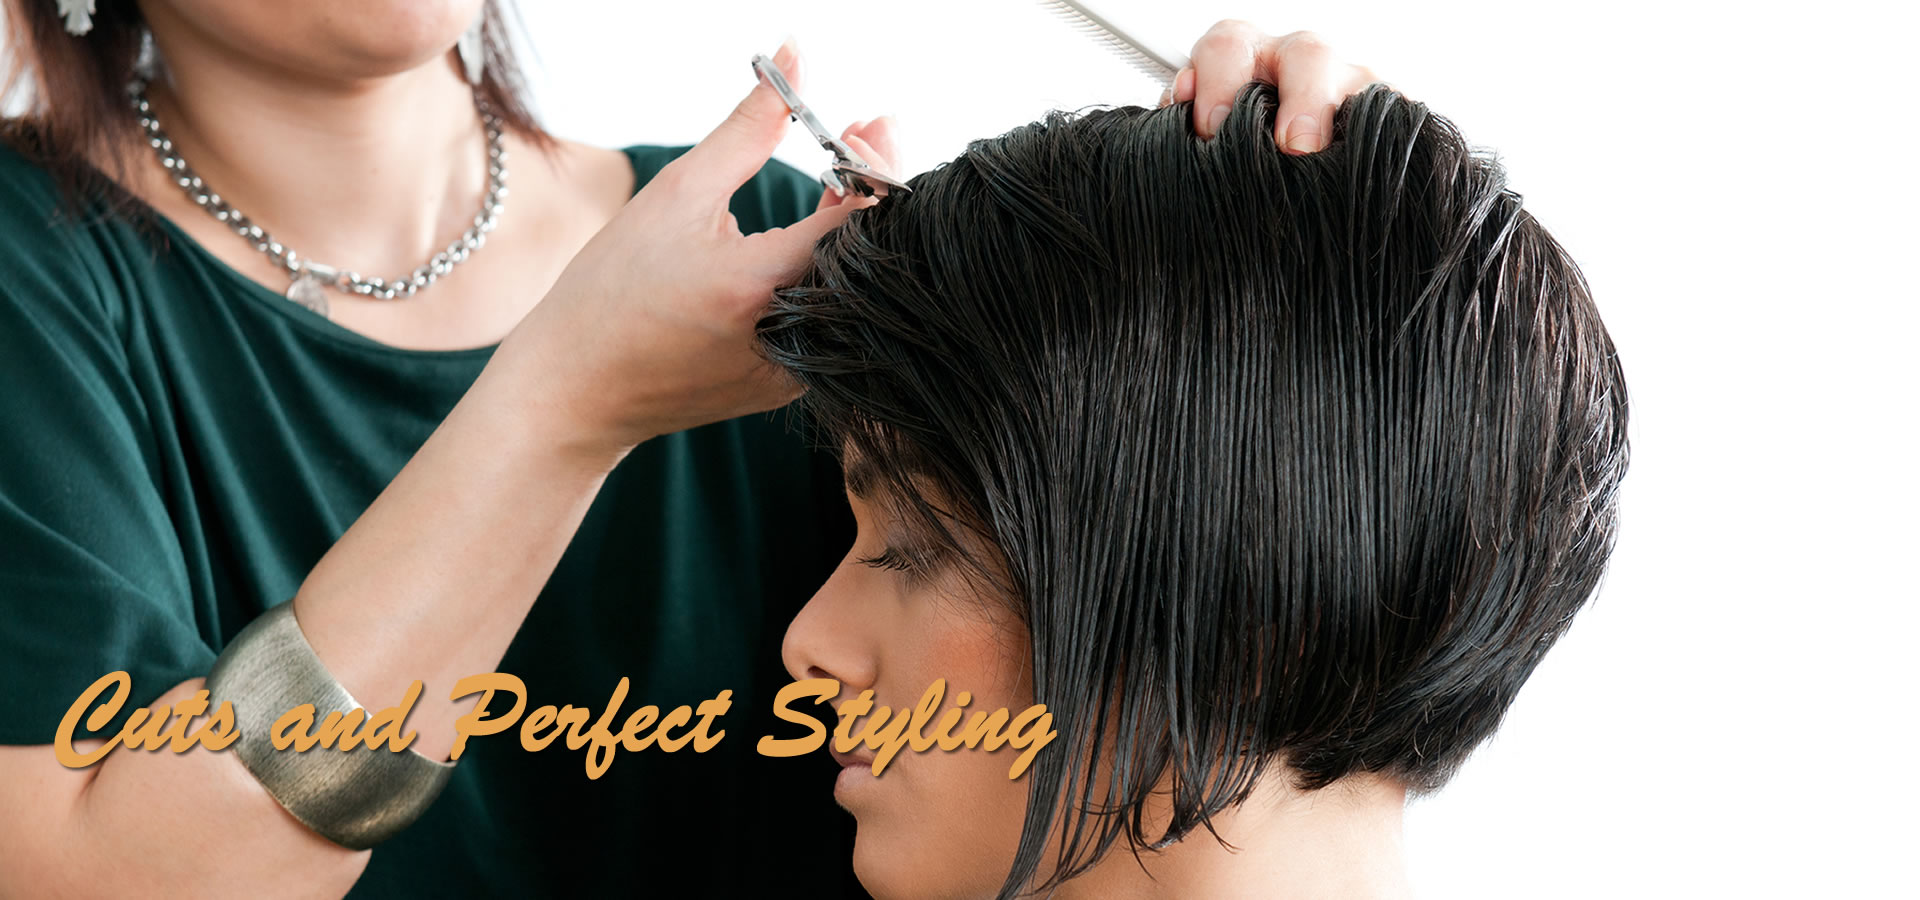 Salon Hair Latino Salon Spa